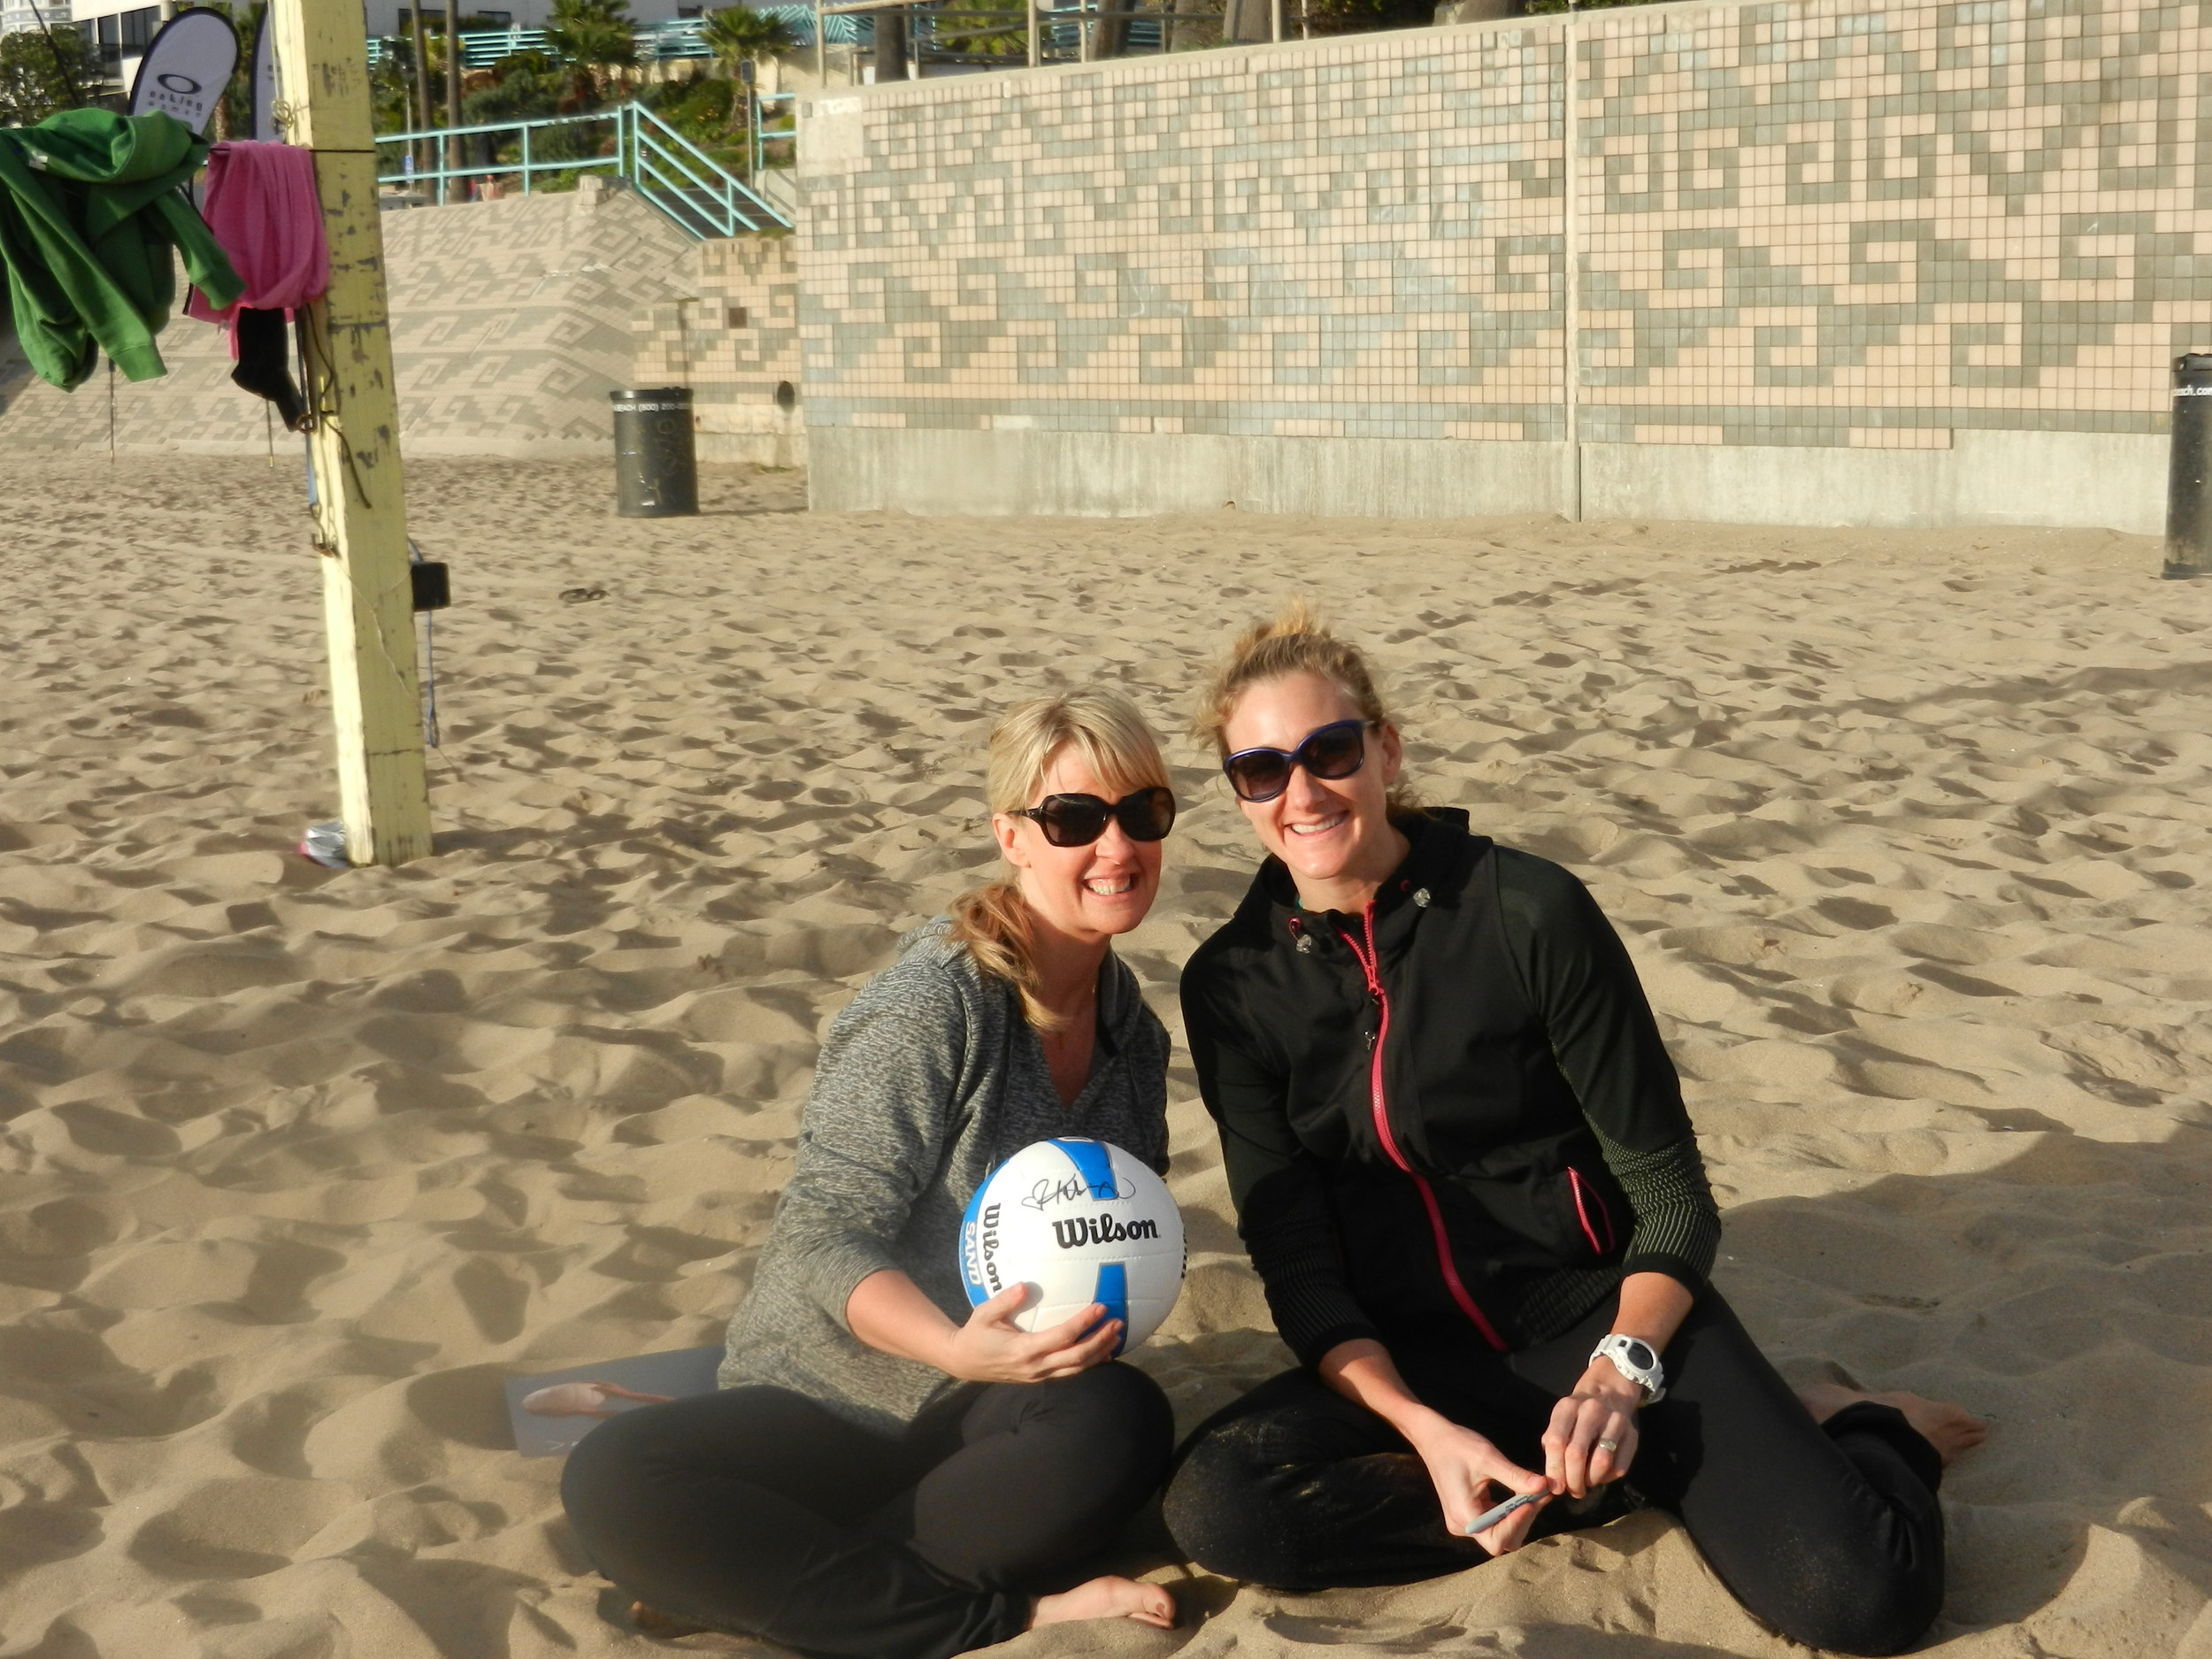 yup, that's me and yup, that's Kerri Walsh and YUP I did actually play volleyball with her. WHAT?